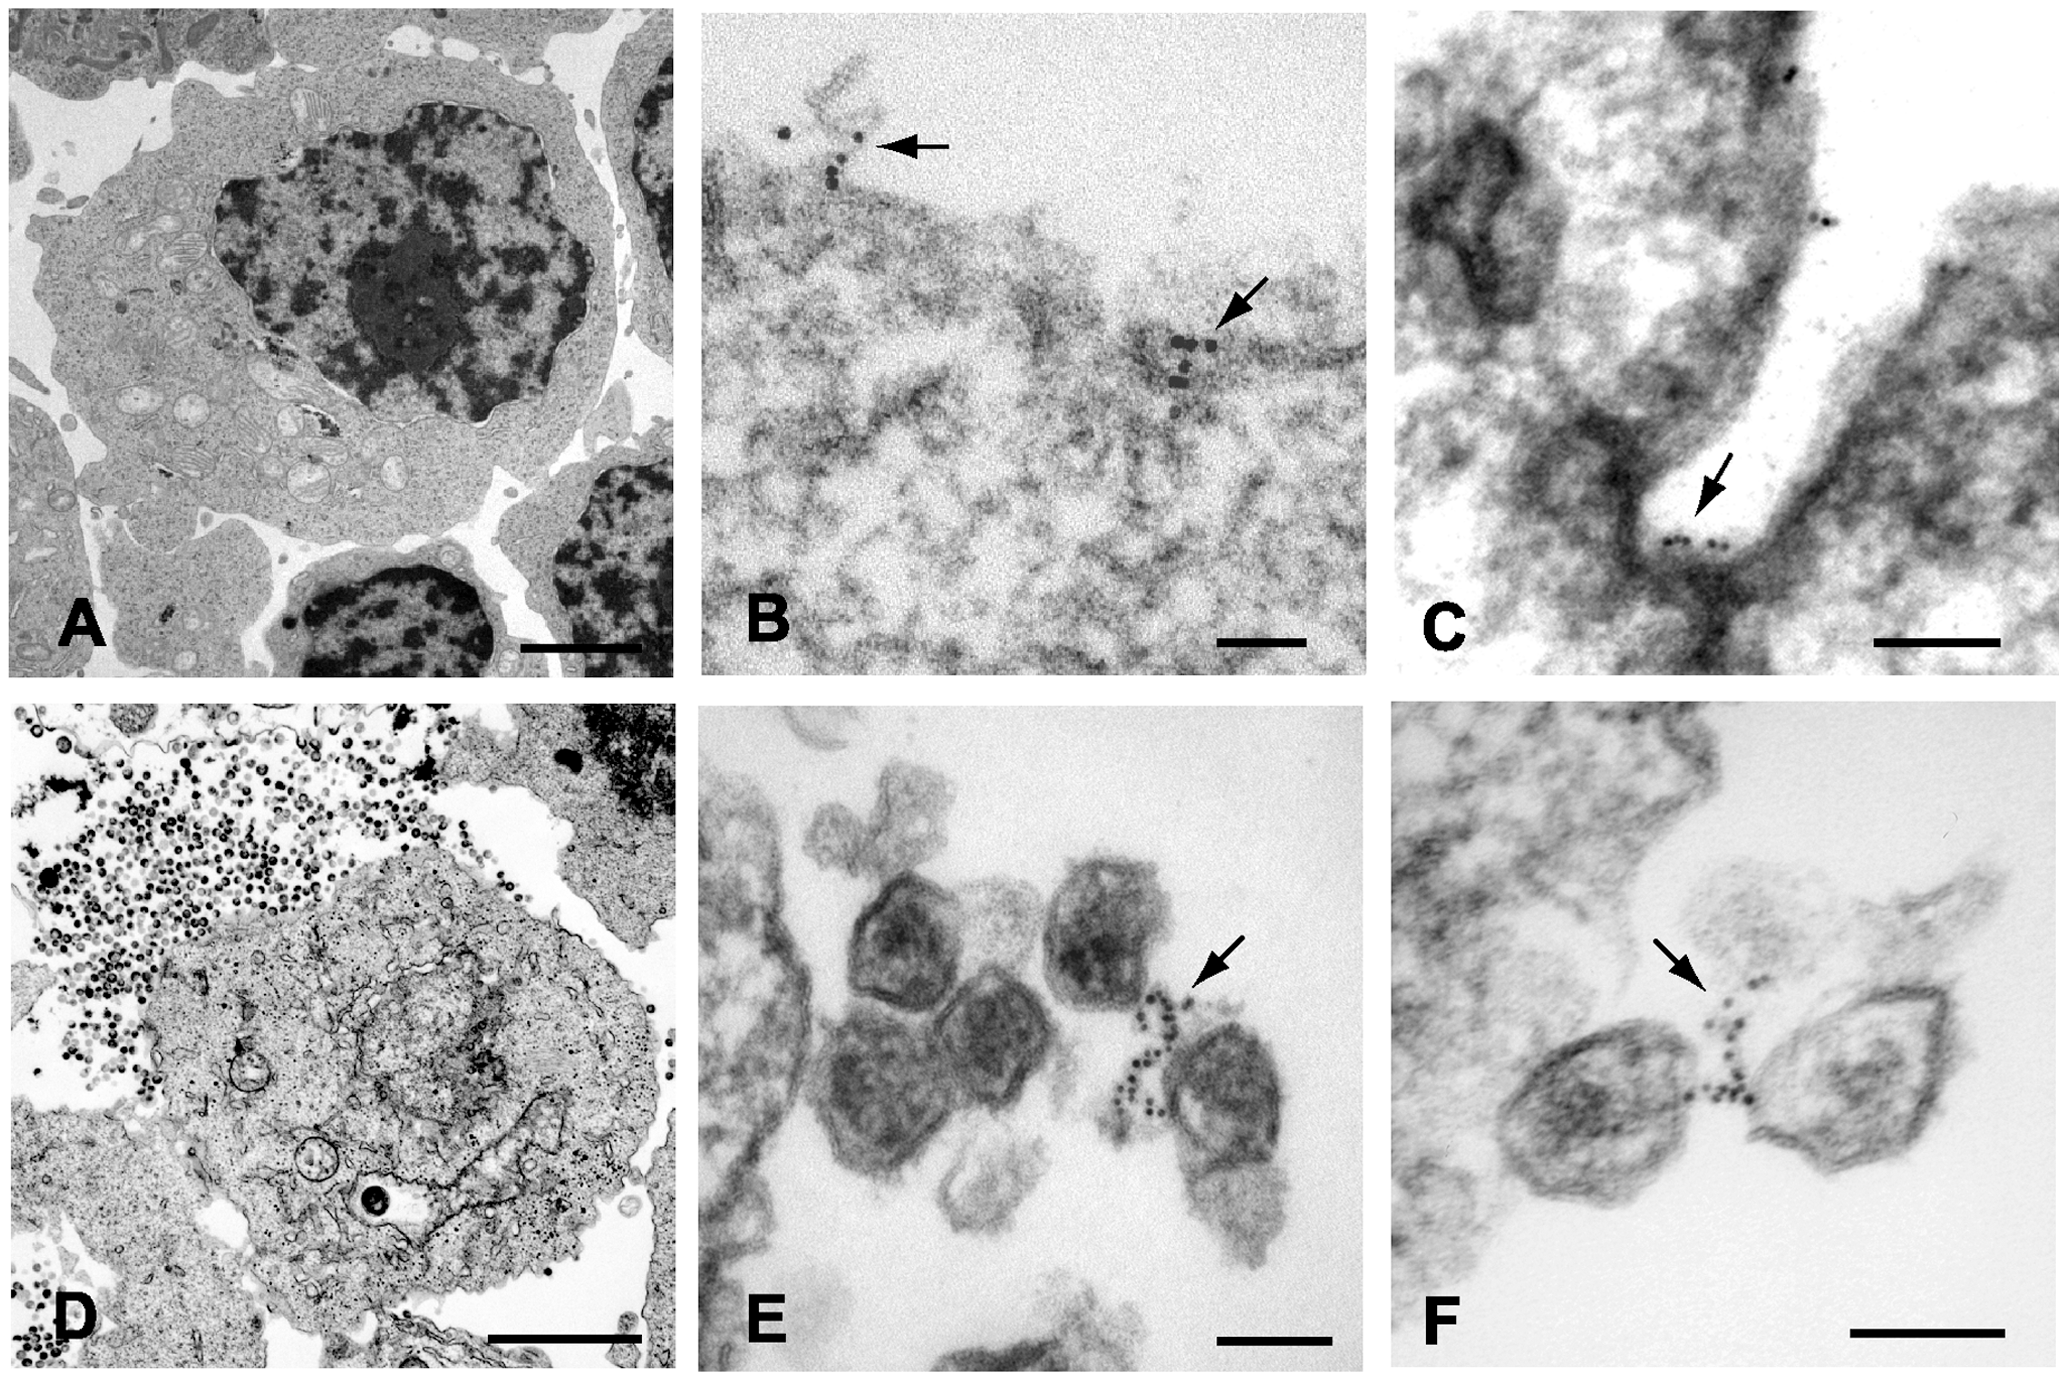 Immunoelectron micrographic analysis of tetherin on IFN-α stimulated A3.01 control cells and samples infected with pseudotyped NL4.3/Udel.